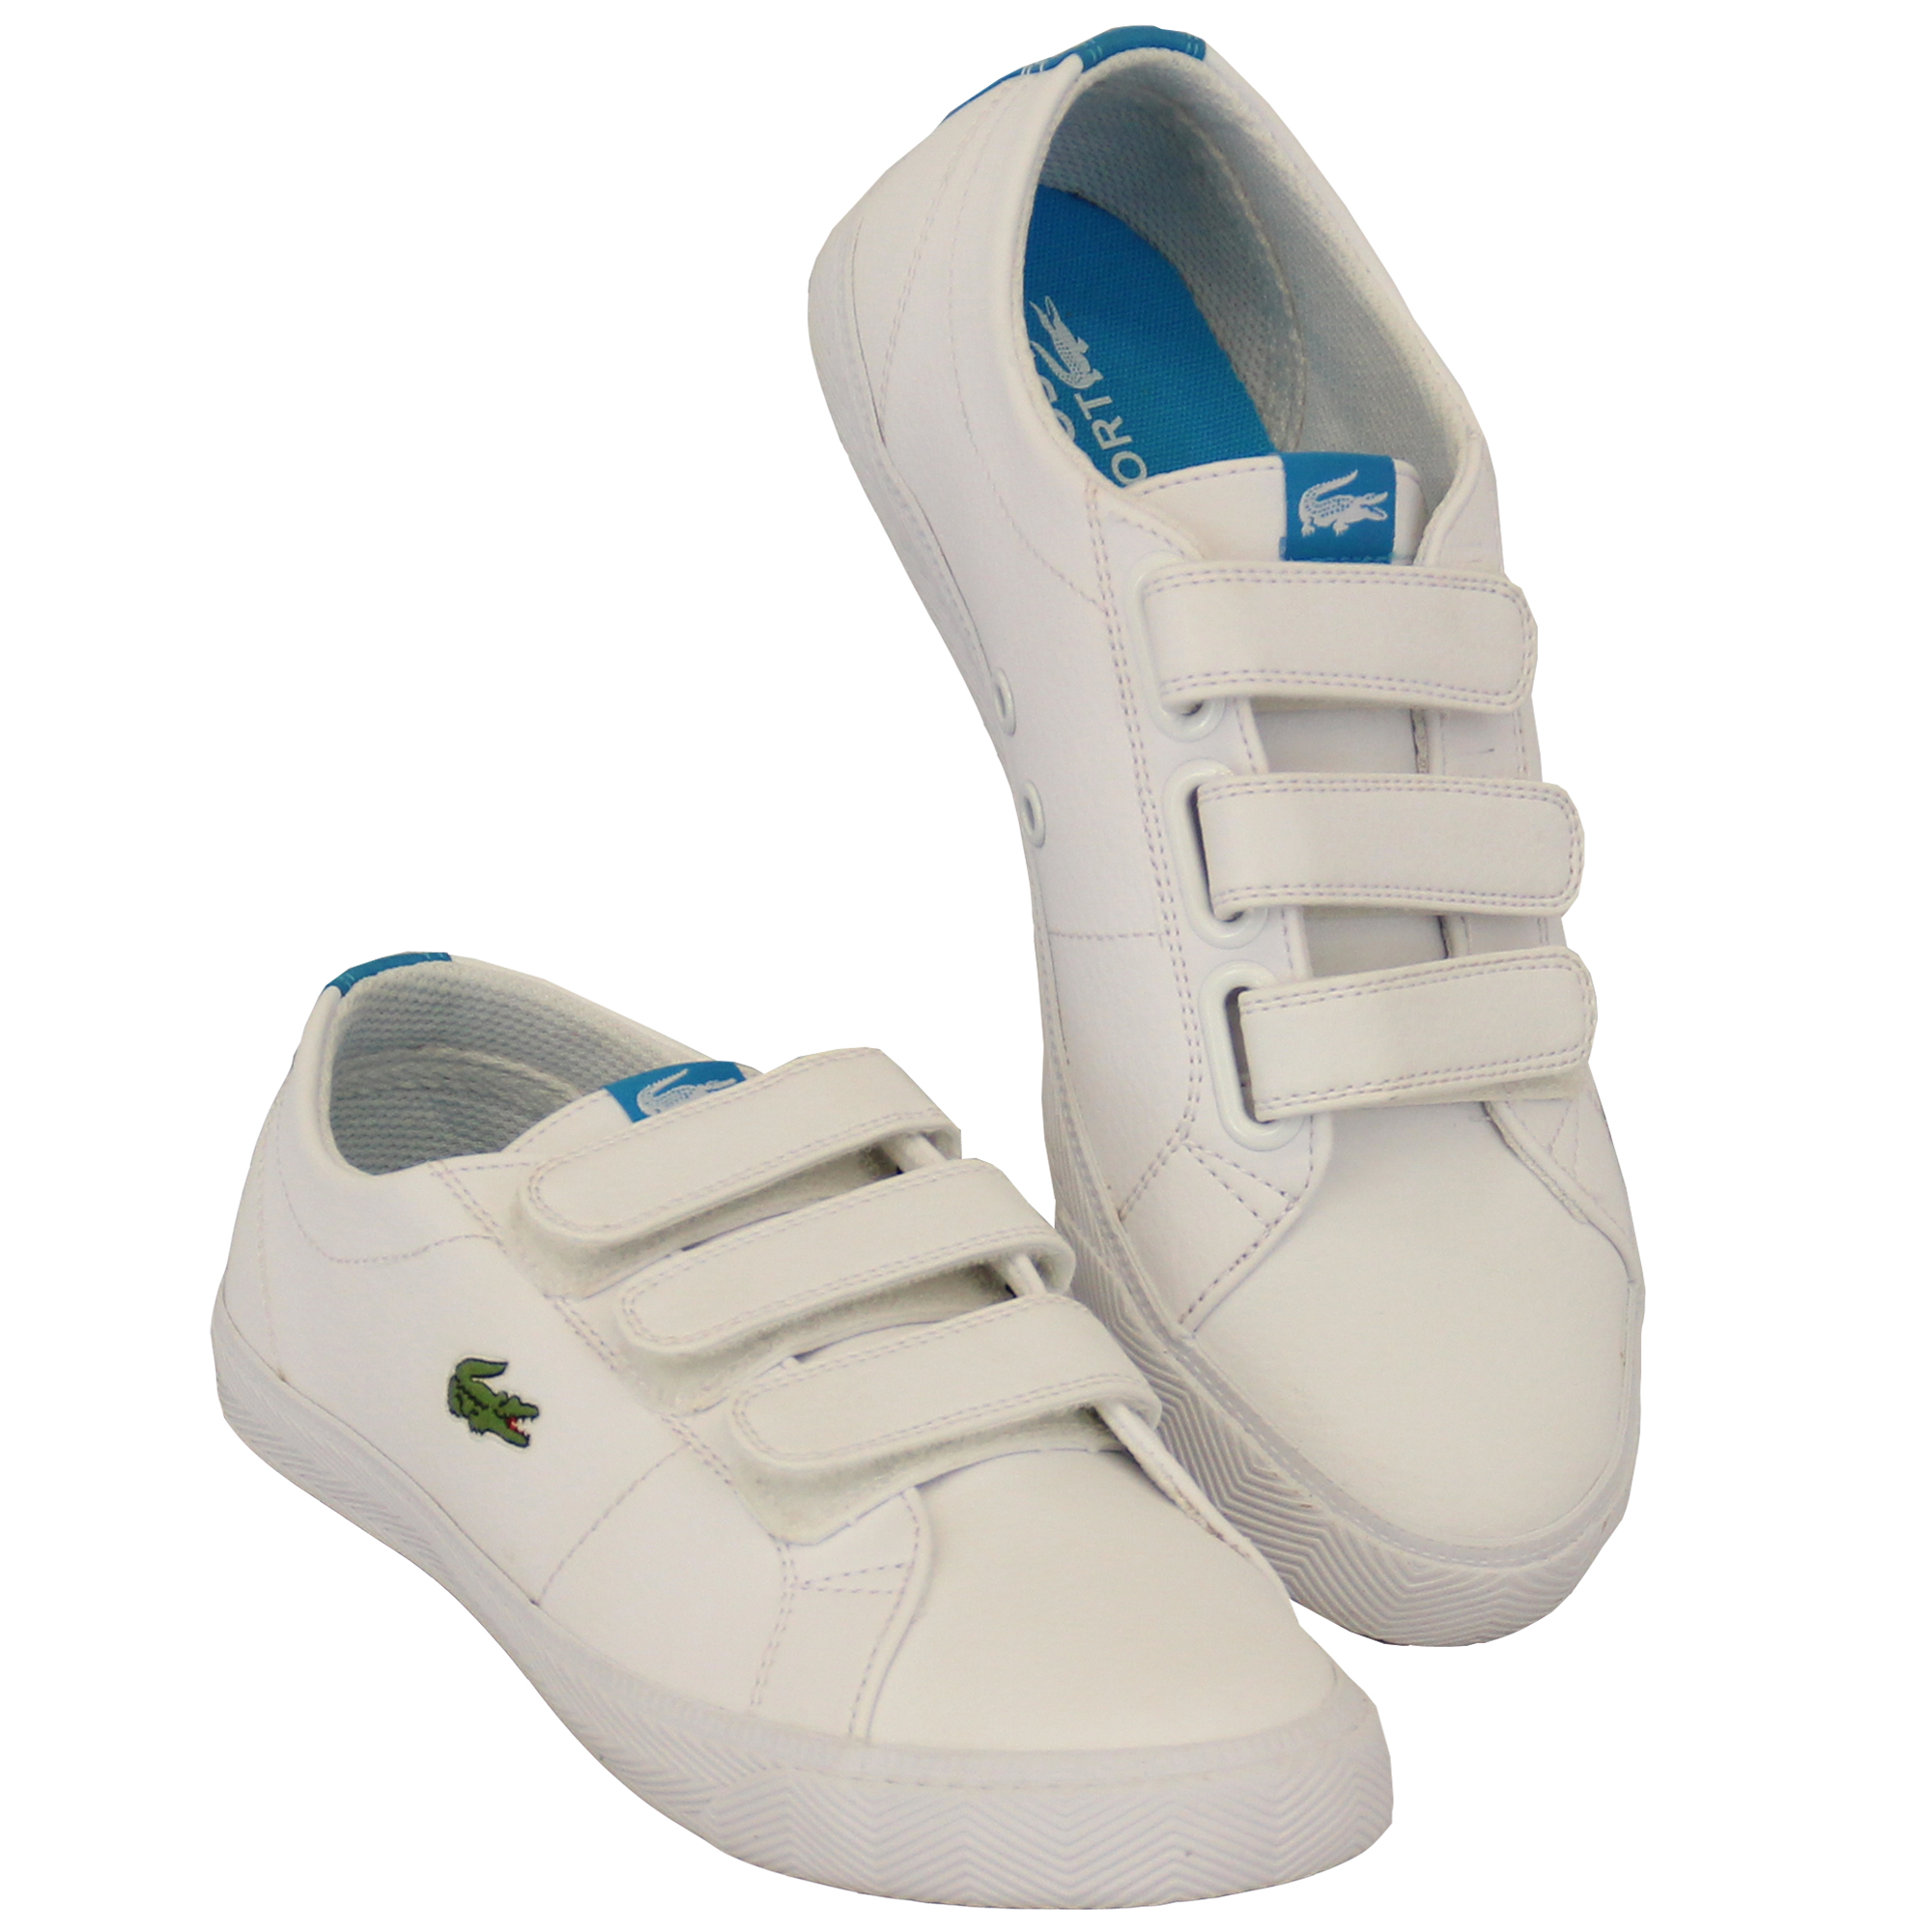 b6b5d2aa38 Boys Girls LACOSTE Trainers Kids Chunky Pumps Casual Shoes Lace Up ...